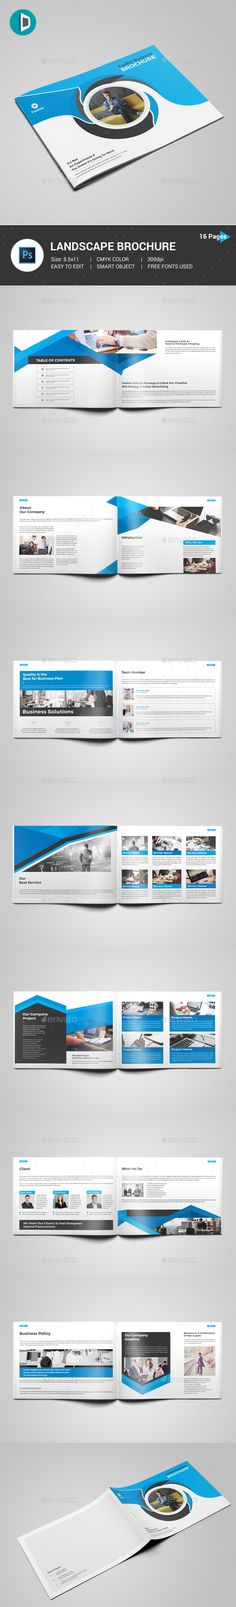 Brochure This Brochure Template Contains 16 Pages. You can use this brochure for your business purpose or others sector. You can easily change all text, layers, images etc (Smart Object use for image import).